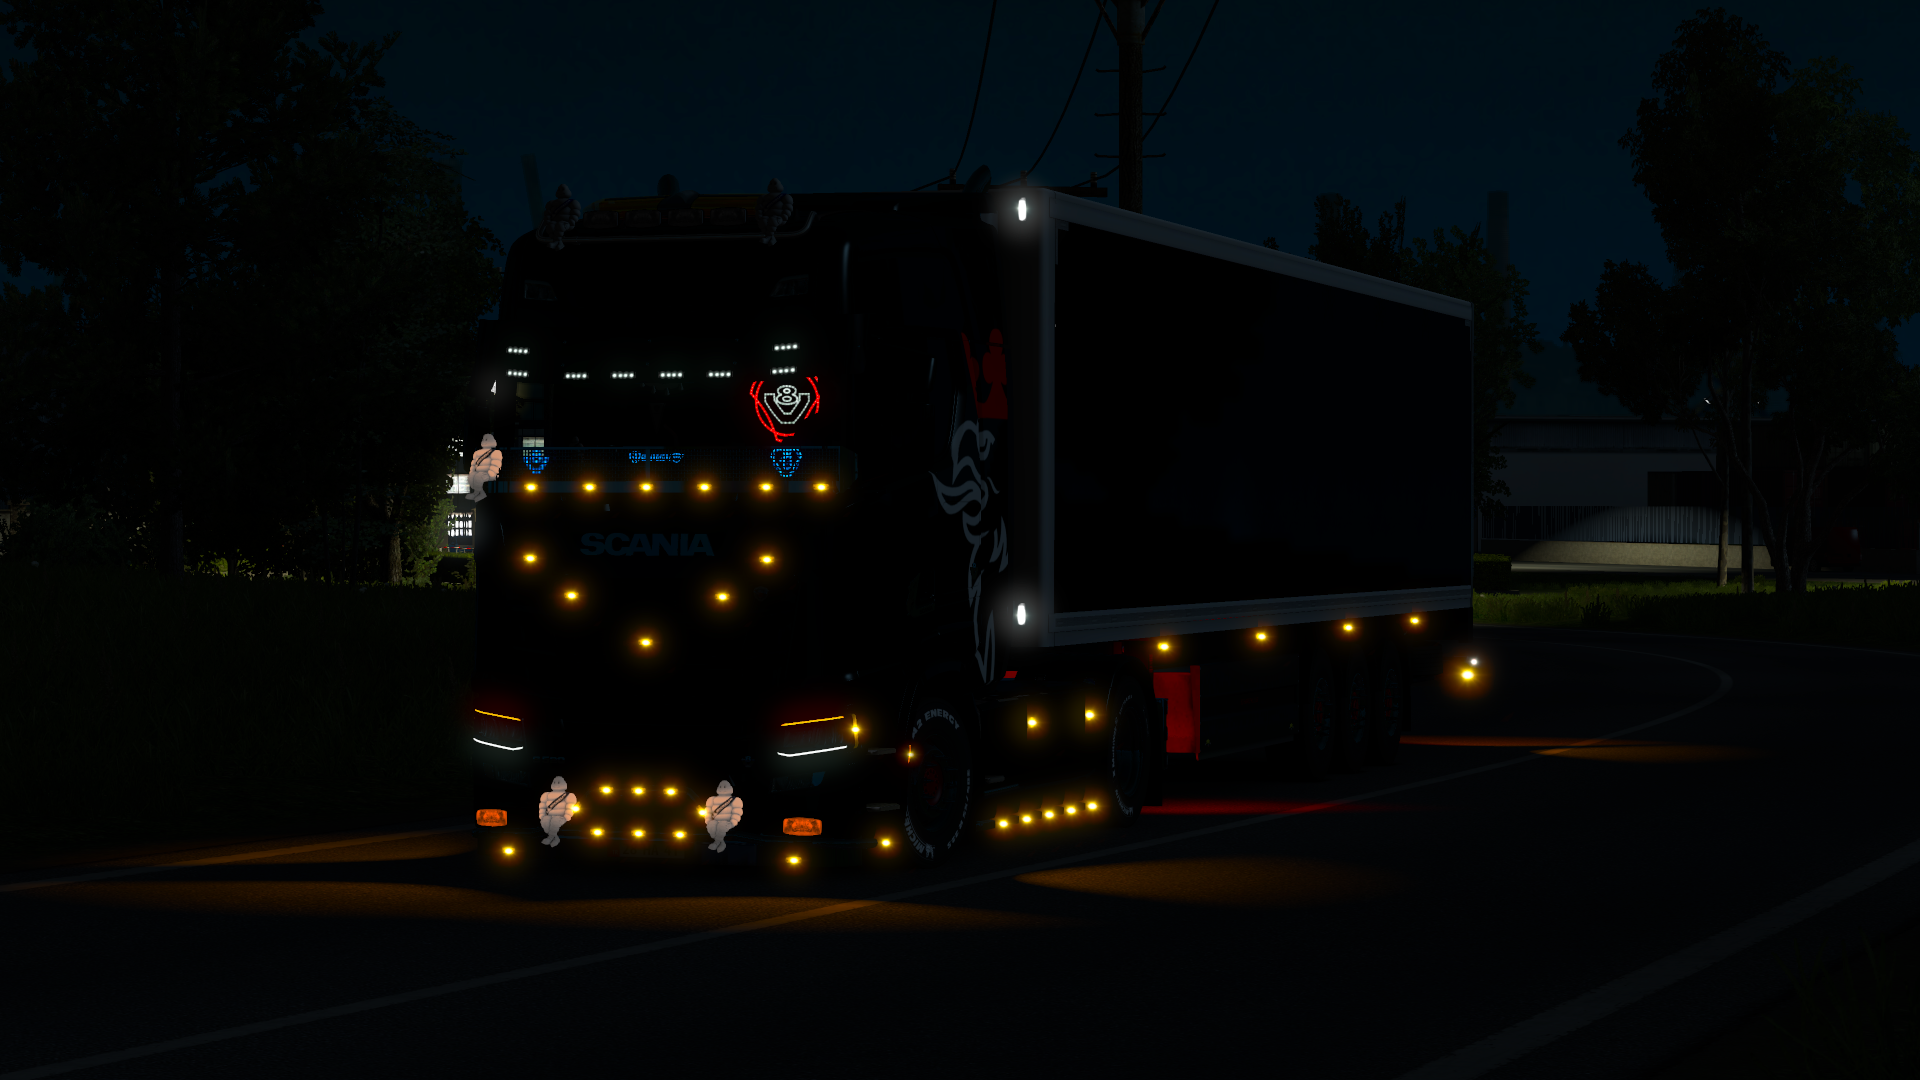 ets2_20190324_214826_00.png